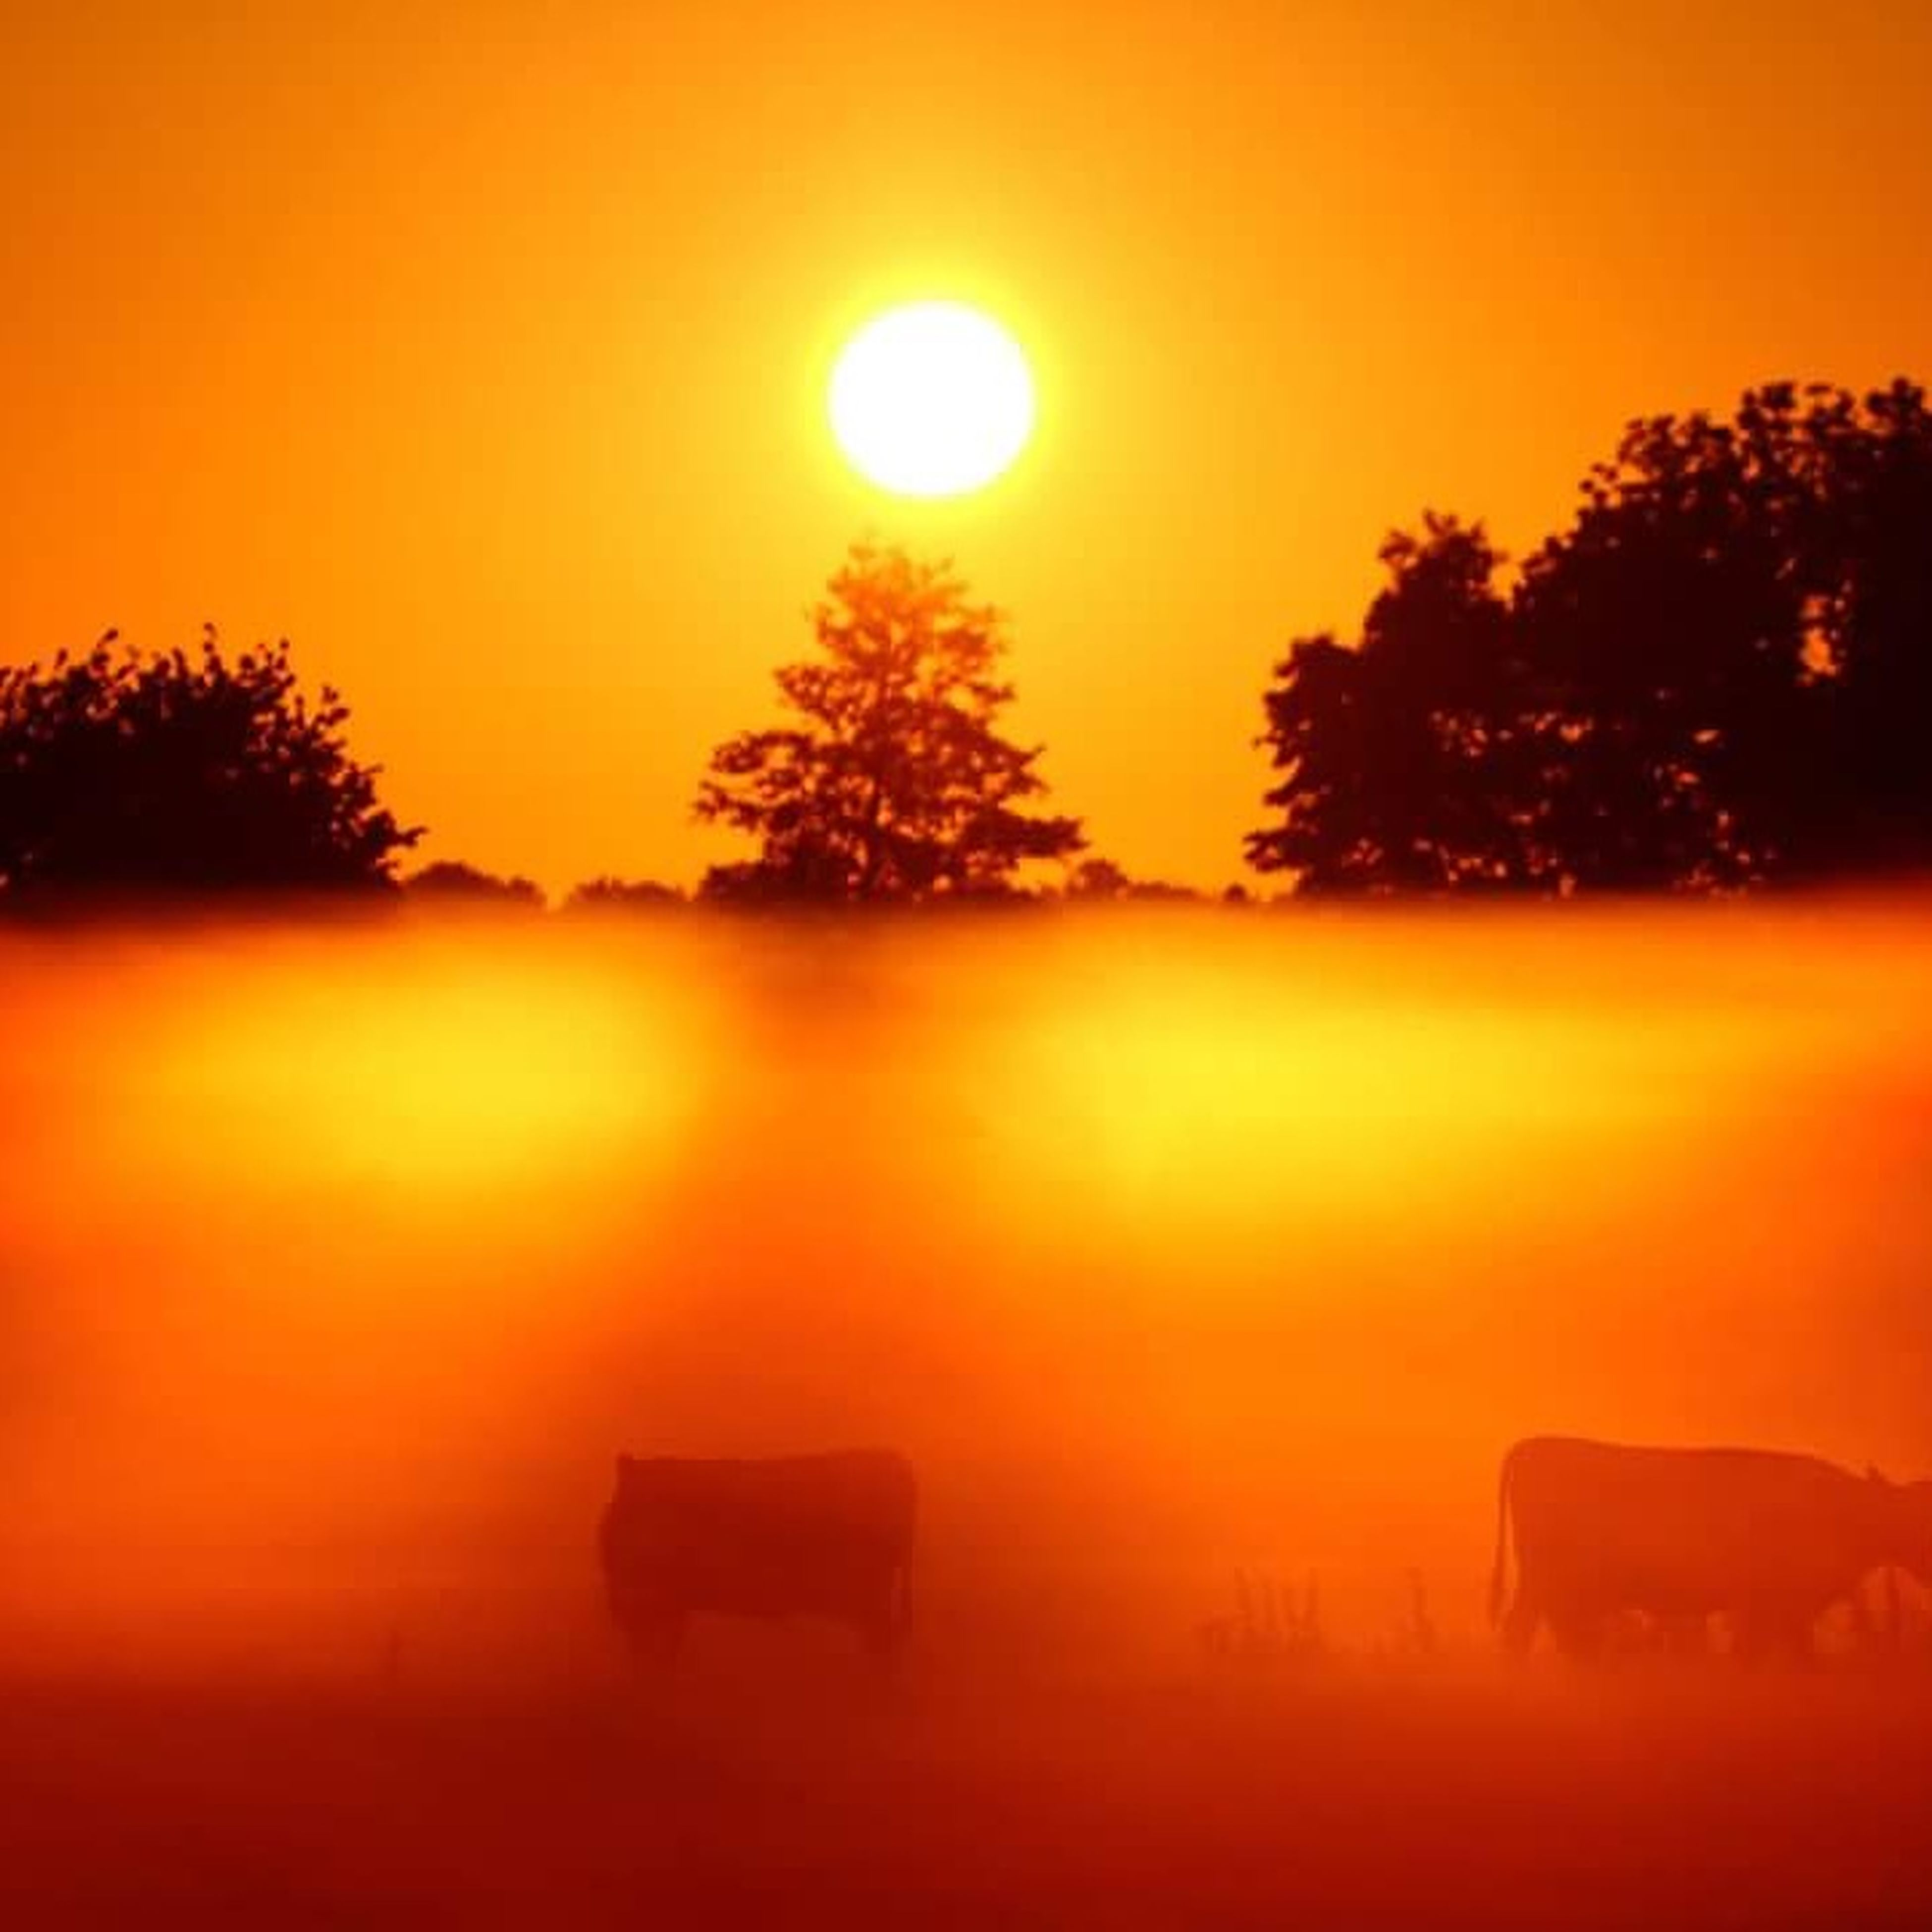 sunset, sun, orange color, tree, morning, silhouette, no people, reflection, sky, sunlight, scenics, nature, fog, outdoors, landscape, beauty in nature, dawn, day